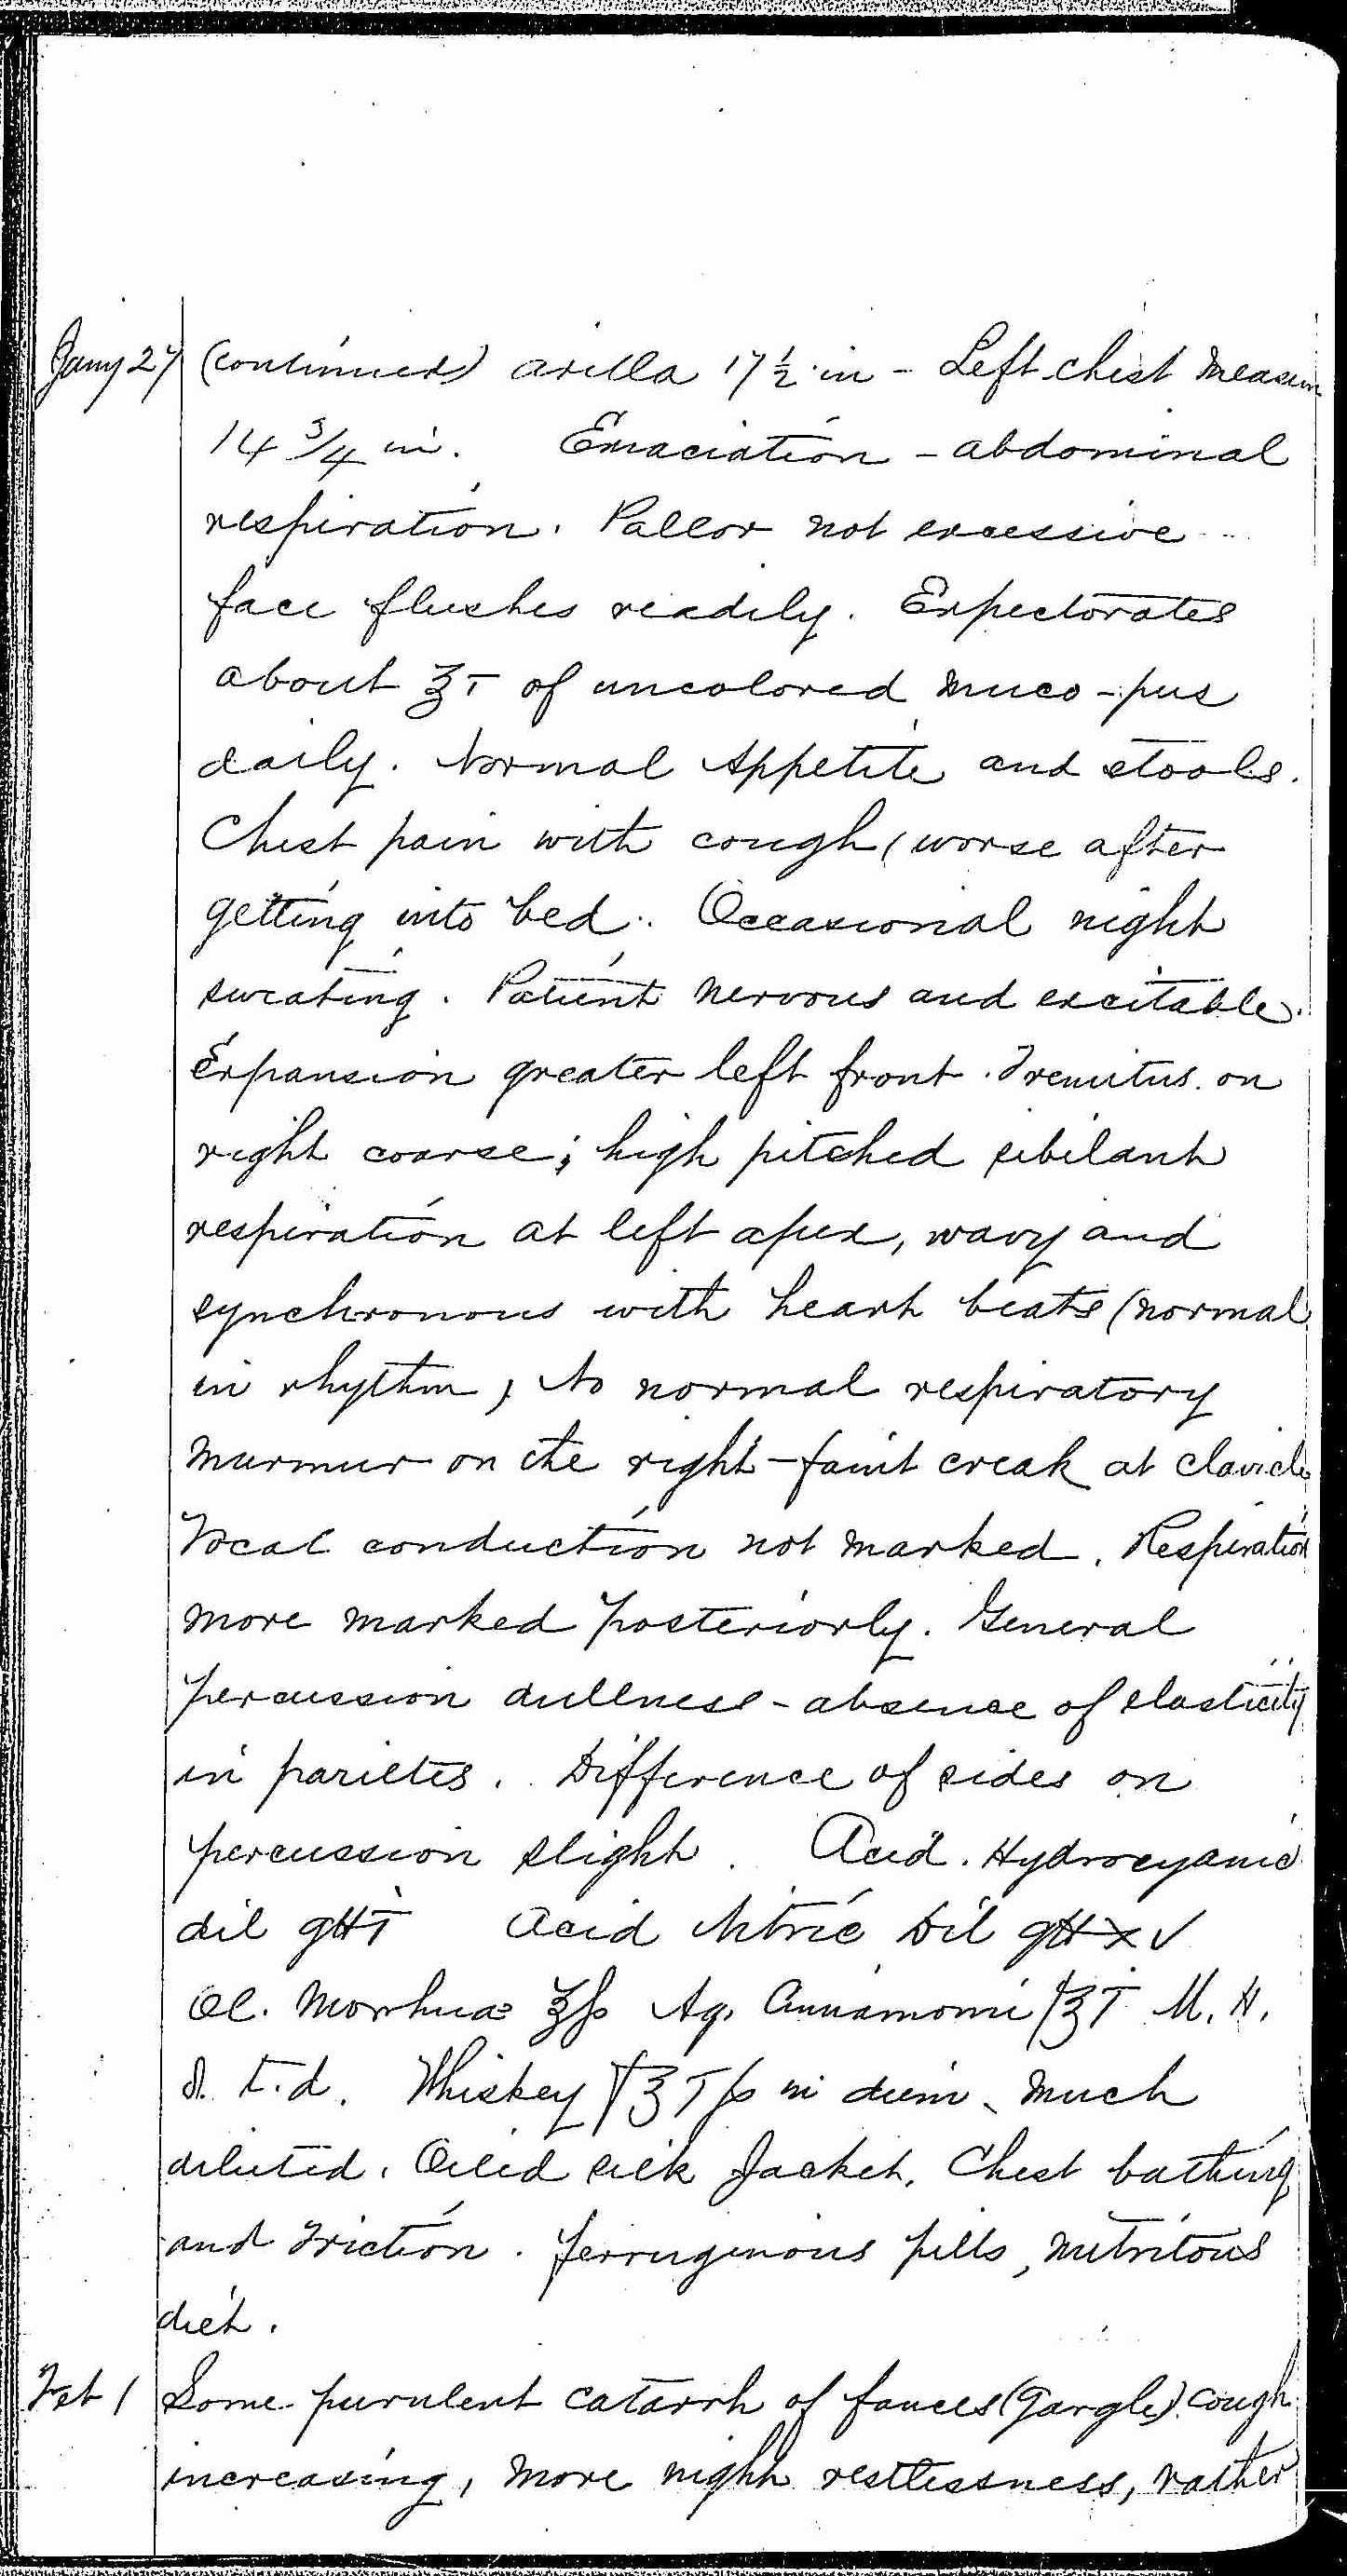 Entry for William Bathwell (page 6 of 13) in the log Hospital Tickets and Case Papers - Naval Hospital - Washington, D.C. - 1868-69